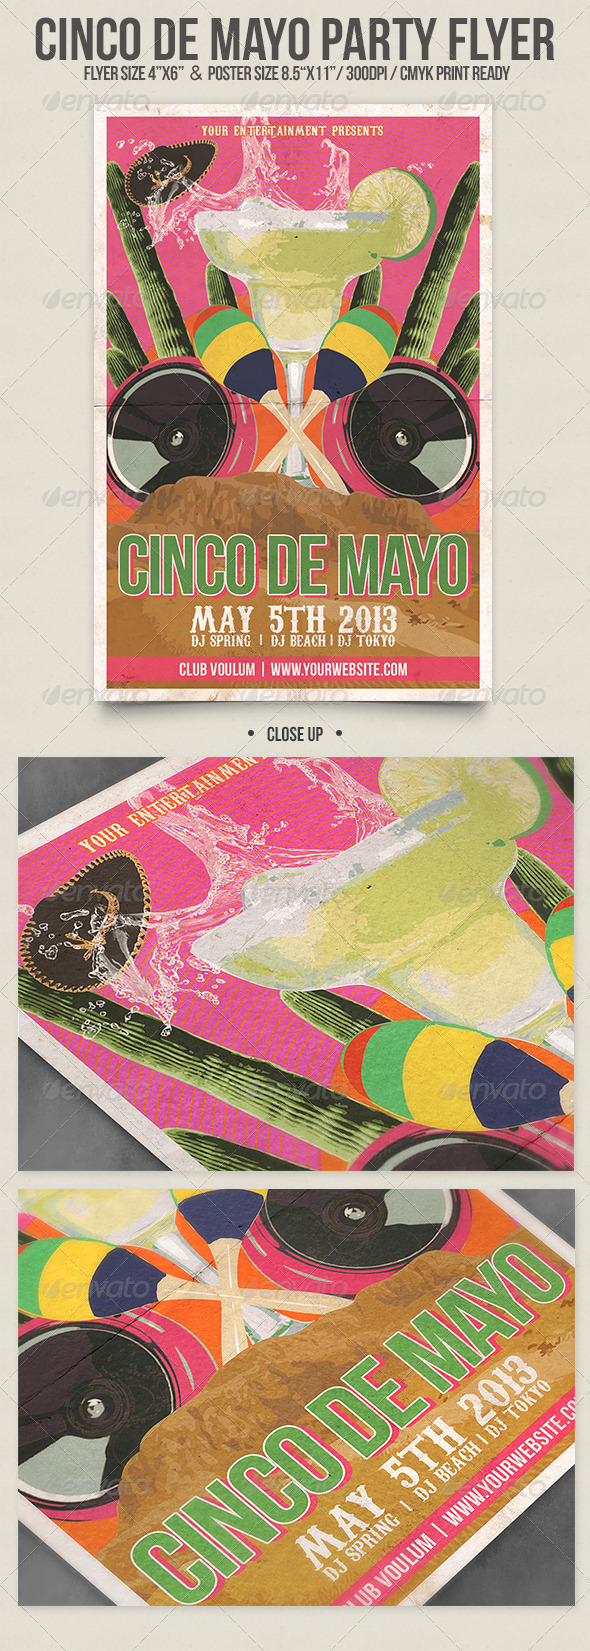 GraphicRiver Cinco de Mayo Party Flyer Poster 4374136